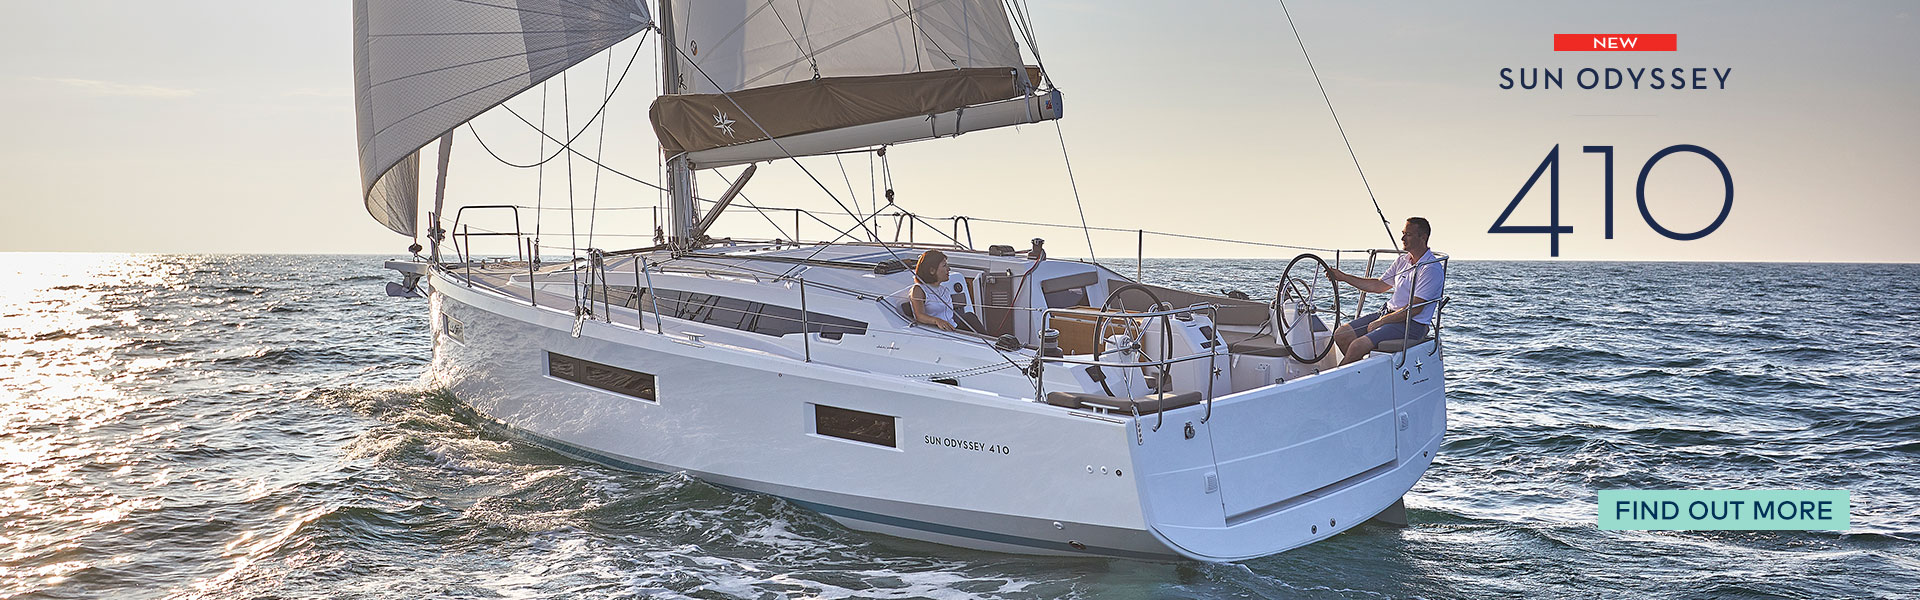 Boat Lagoon Yachting - Yacht Sales & Brokerage in Singapore